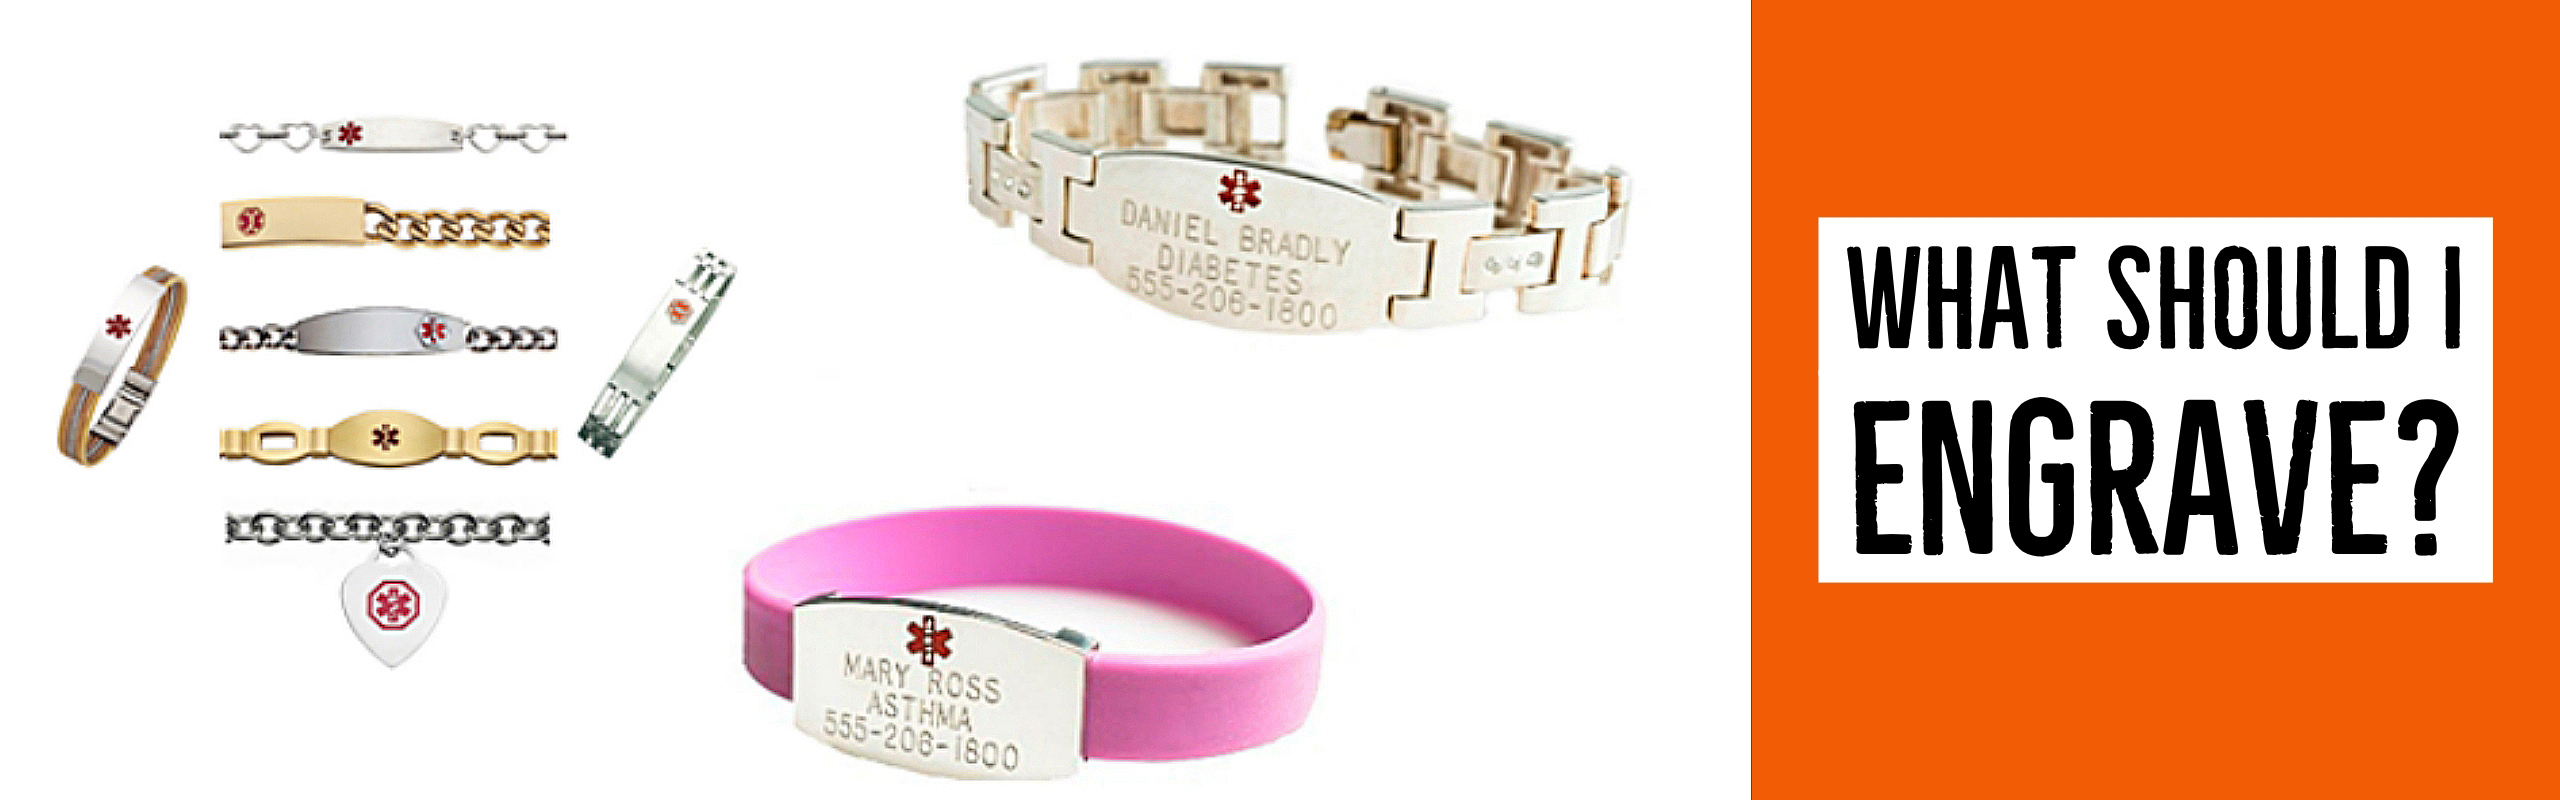 What Should I Engrave on My Medical ID Bracelet? 10 Simple Suggestions...